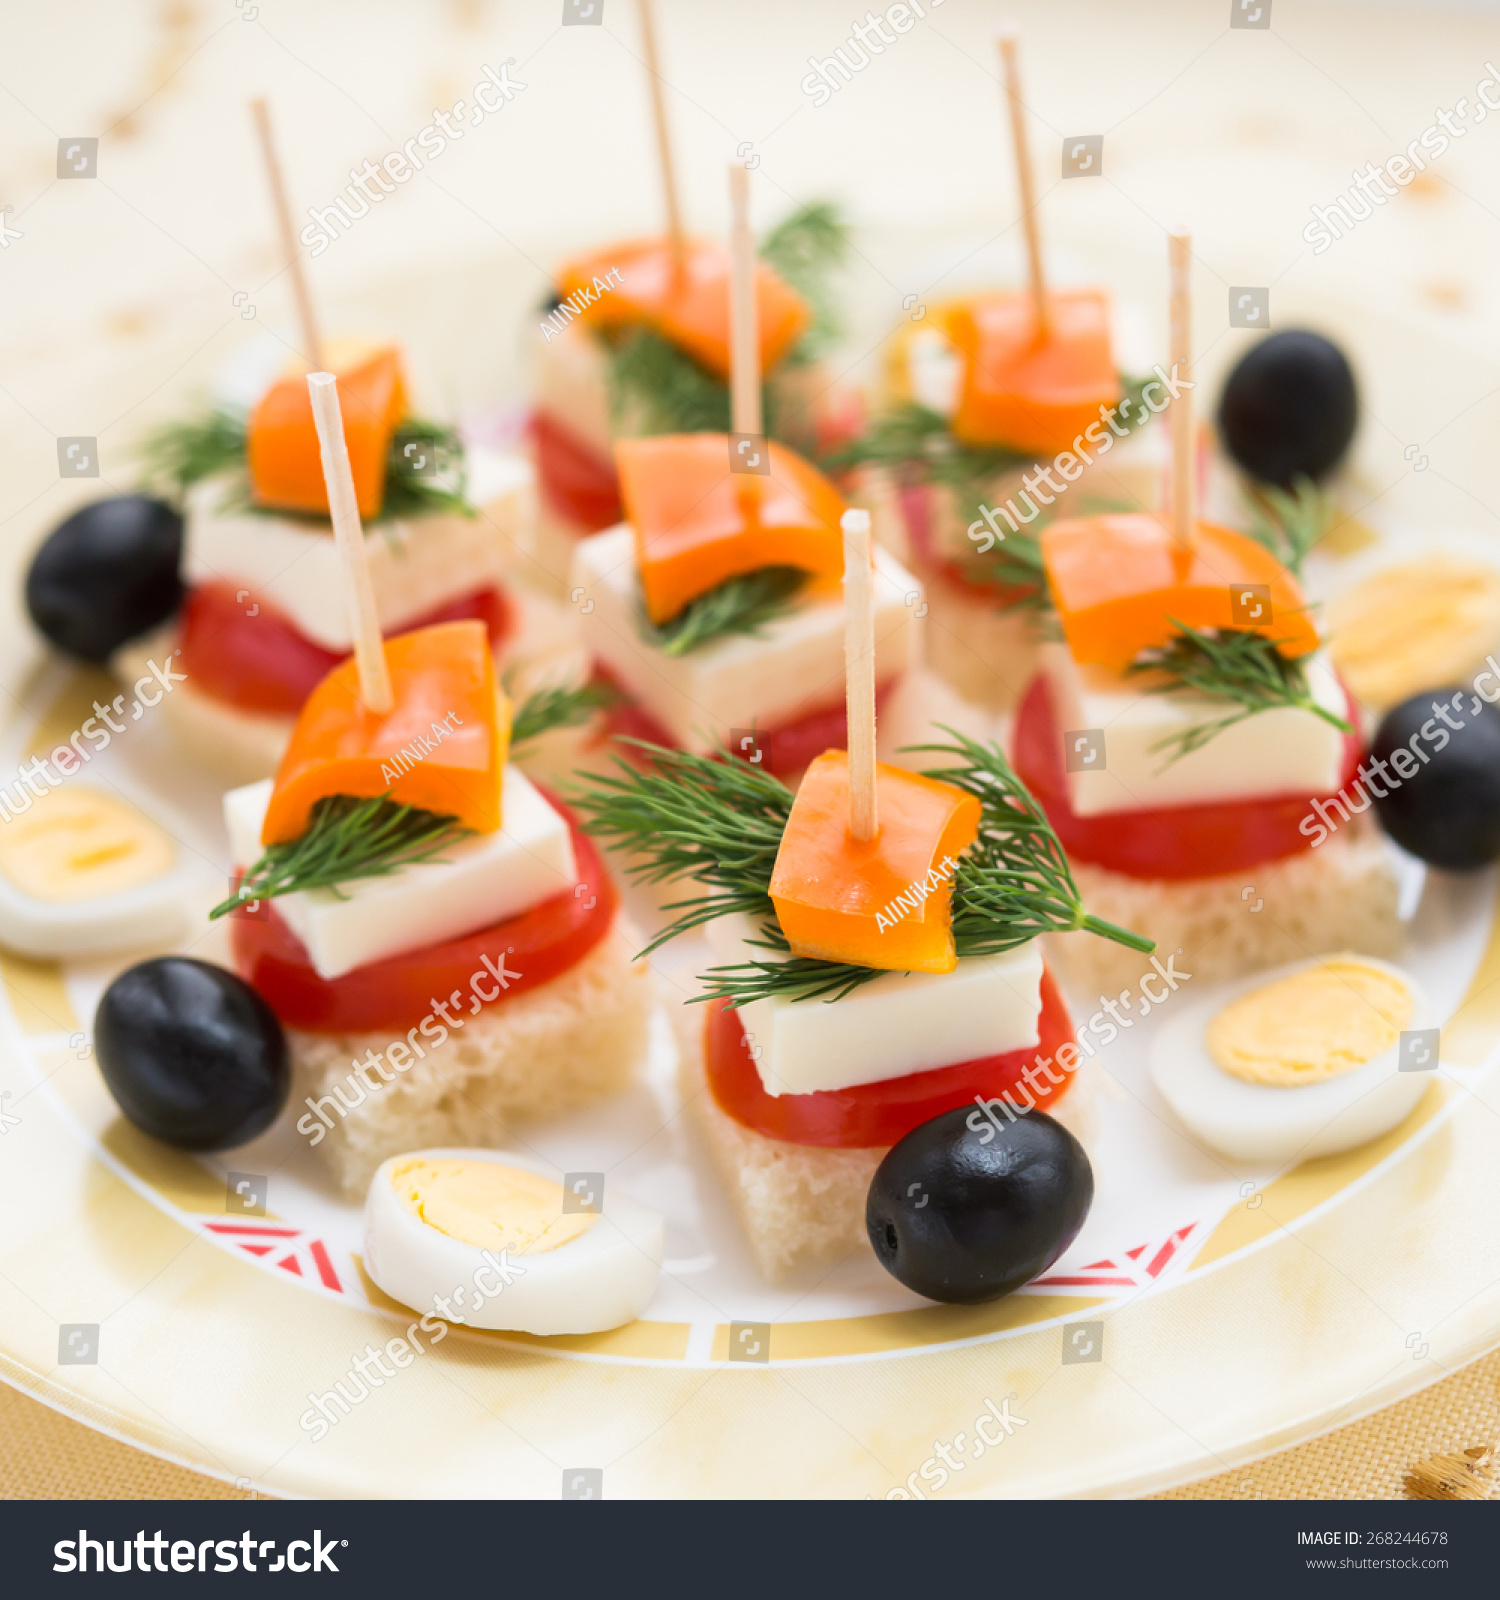 Cold snacks canapes feta cheese vegetables stock photo for Cold canapes